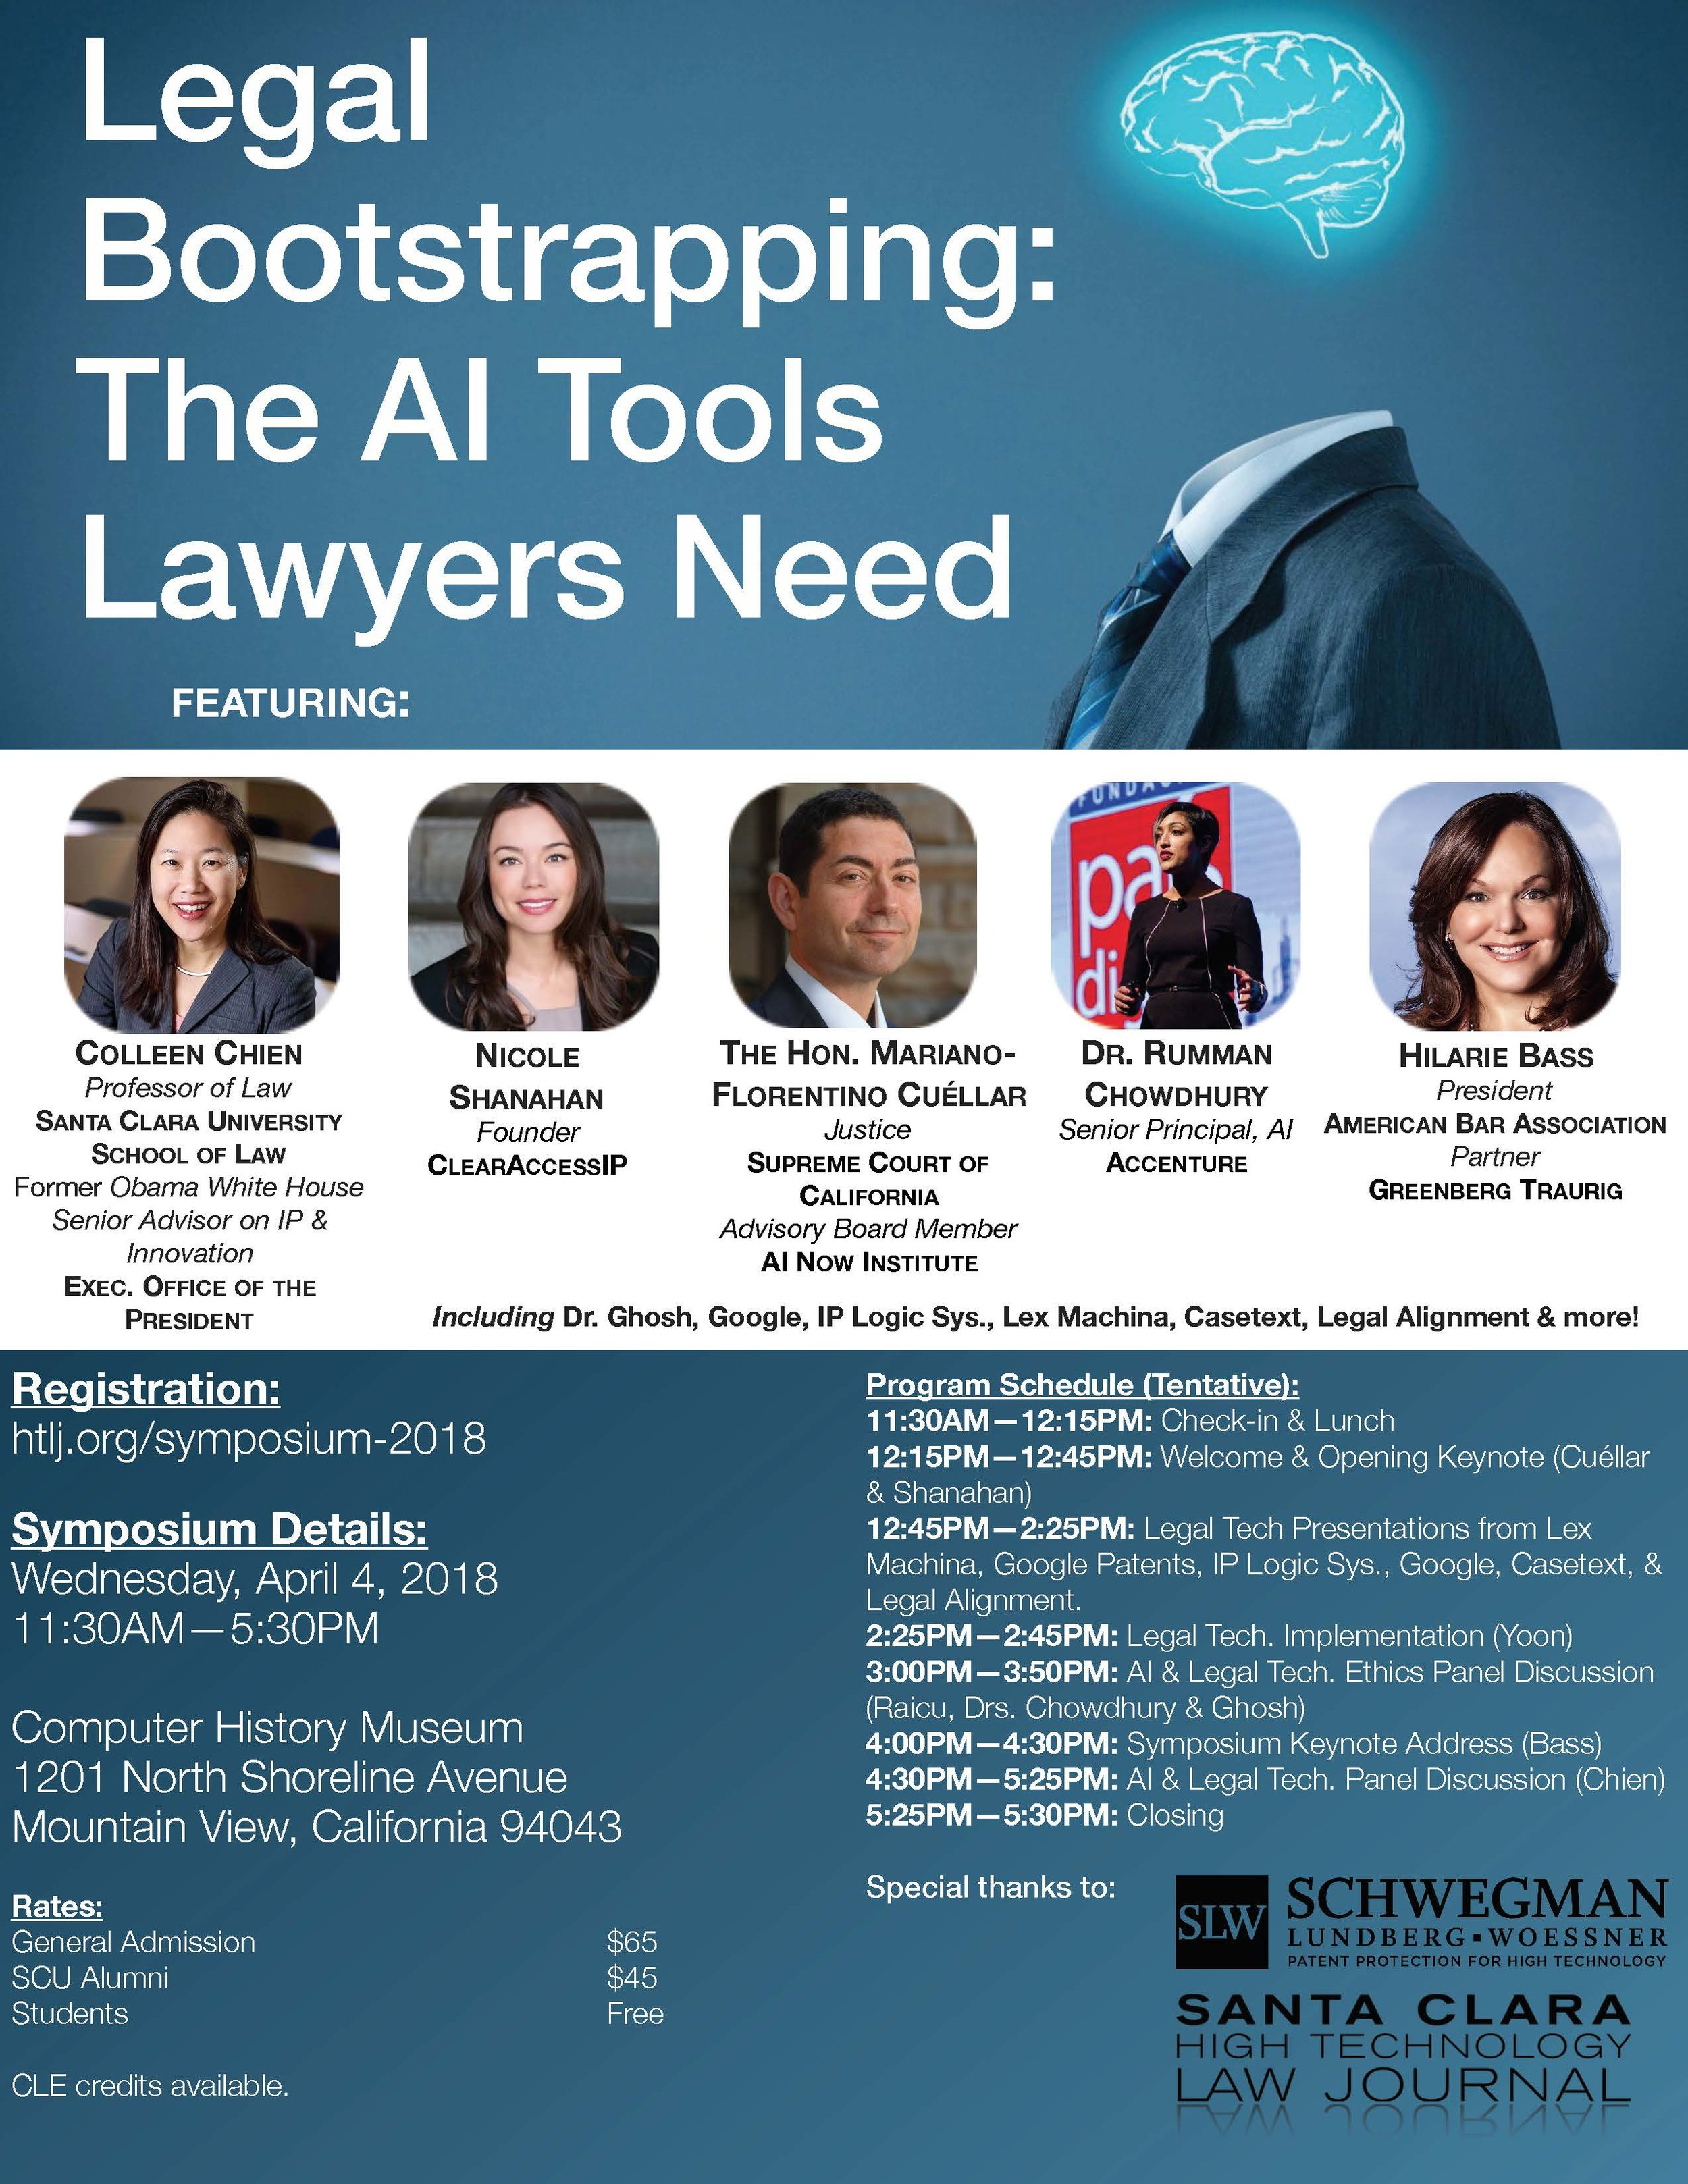 - Discussion TopicsAI-Backed Legal Tools & EthicsLocation DetailsComputer History Museum, located at 1401 North Shoreline Avenue, Mountain View, California.TimeThe Symposium will be held on April 4th, 2018, from 11:30AM – 6:00PM.Lunch will be served prior to the start of the symposium.CLE credits are available.Registration has closed.